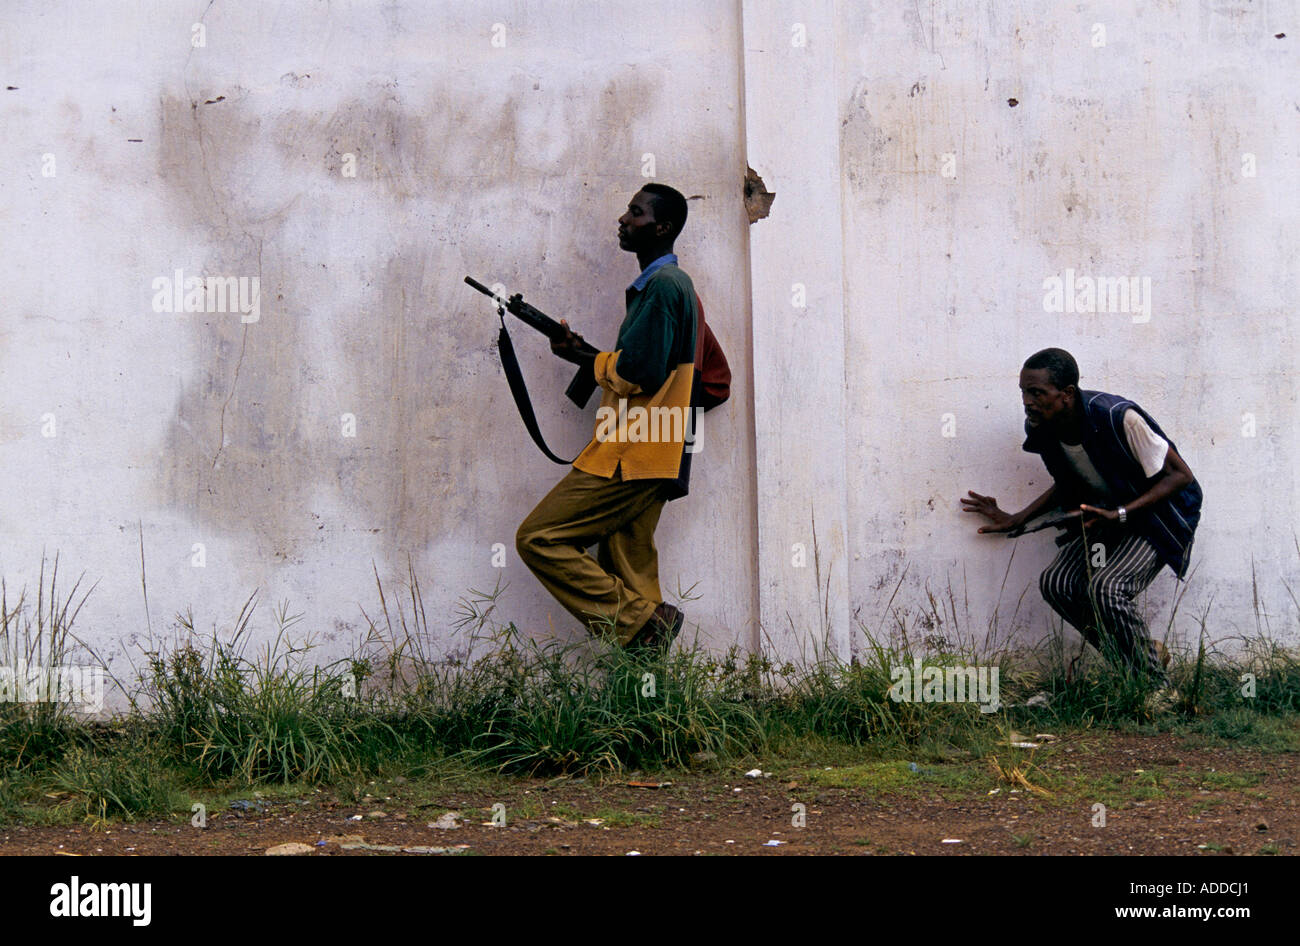 Ulimo J Faction guns at the ready advance from their base in downtown Monrovia to engage Charles Taylor s NPFL fighters - Stock Image